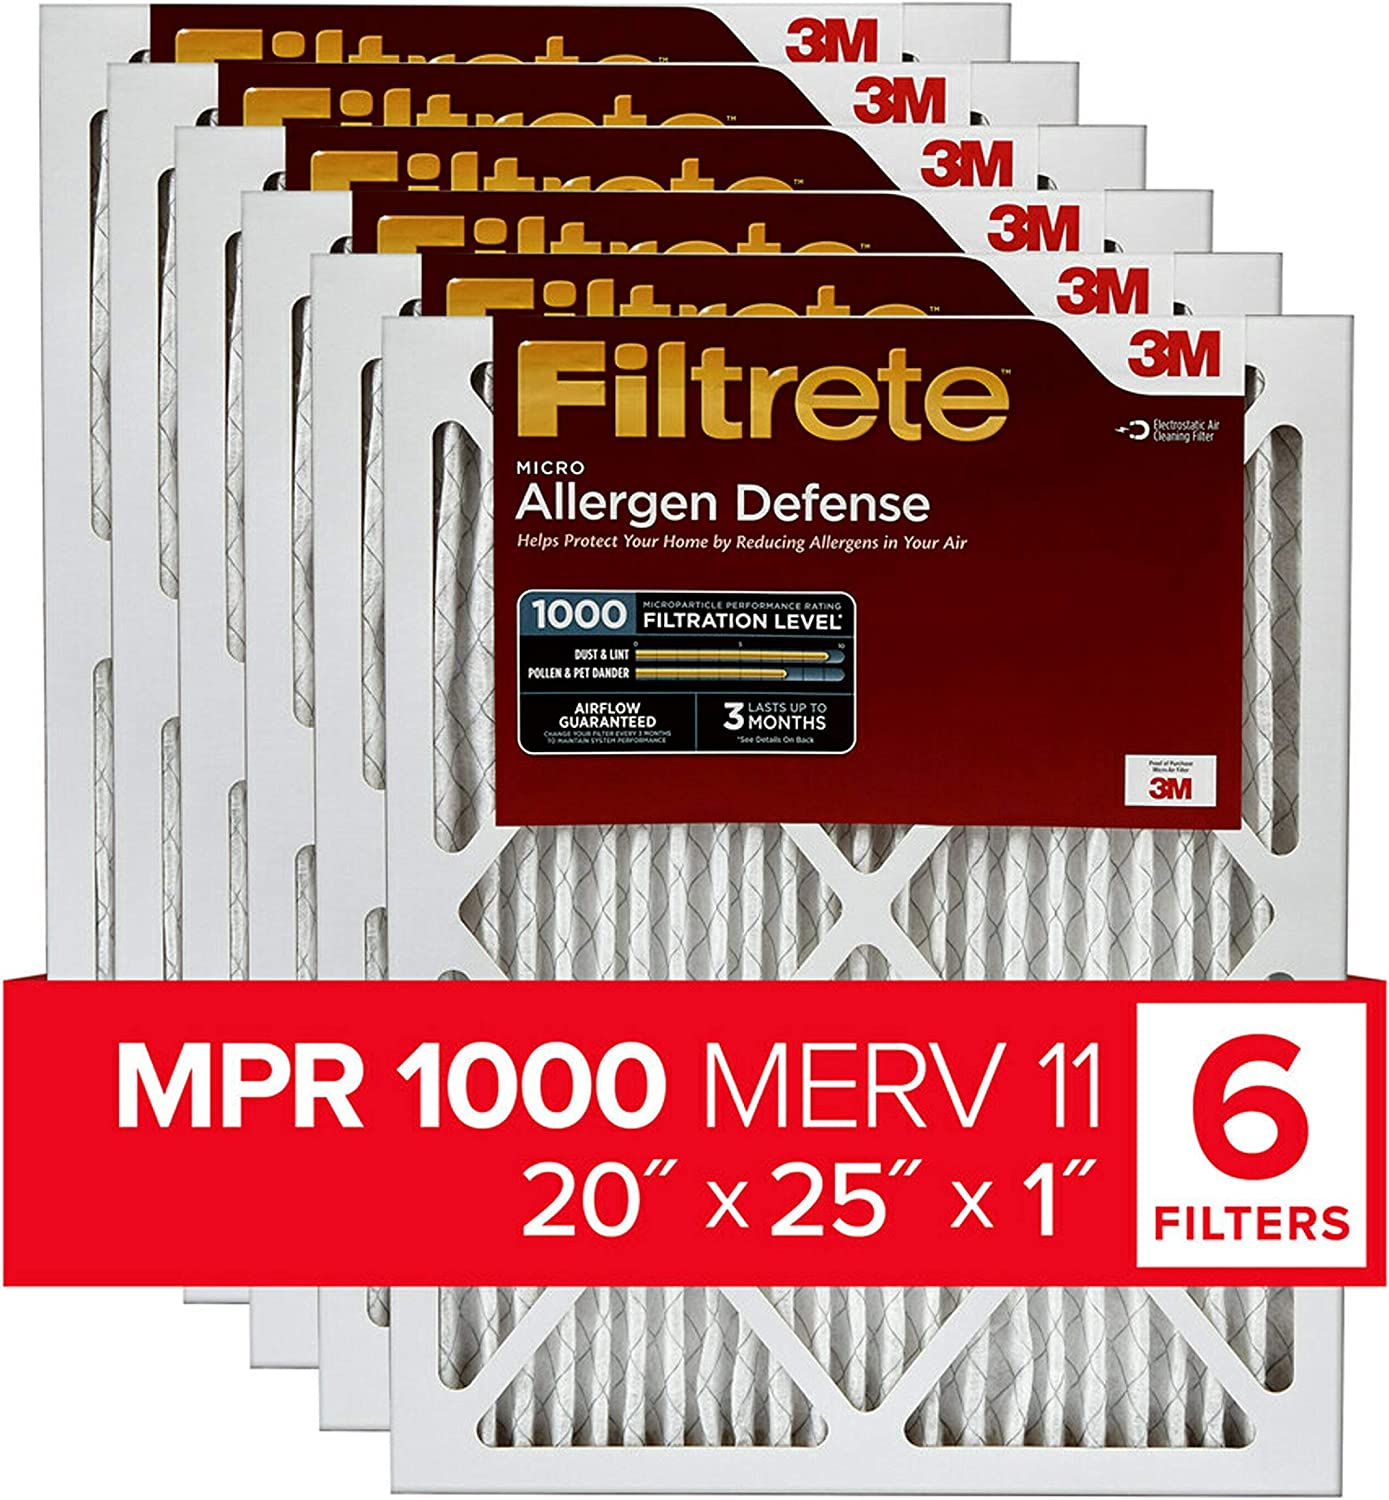 Made in USA 25 Nom Height x 29 Nom Width x 4 Nom Depth Synthetic Wire-Backed Pleated Air Filter 6 Pack